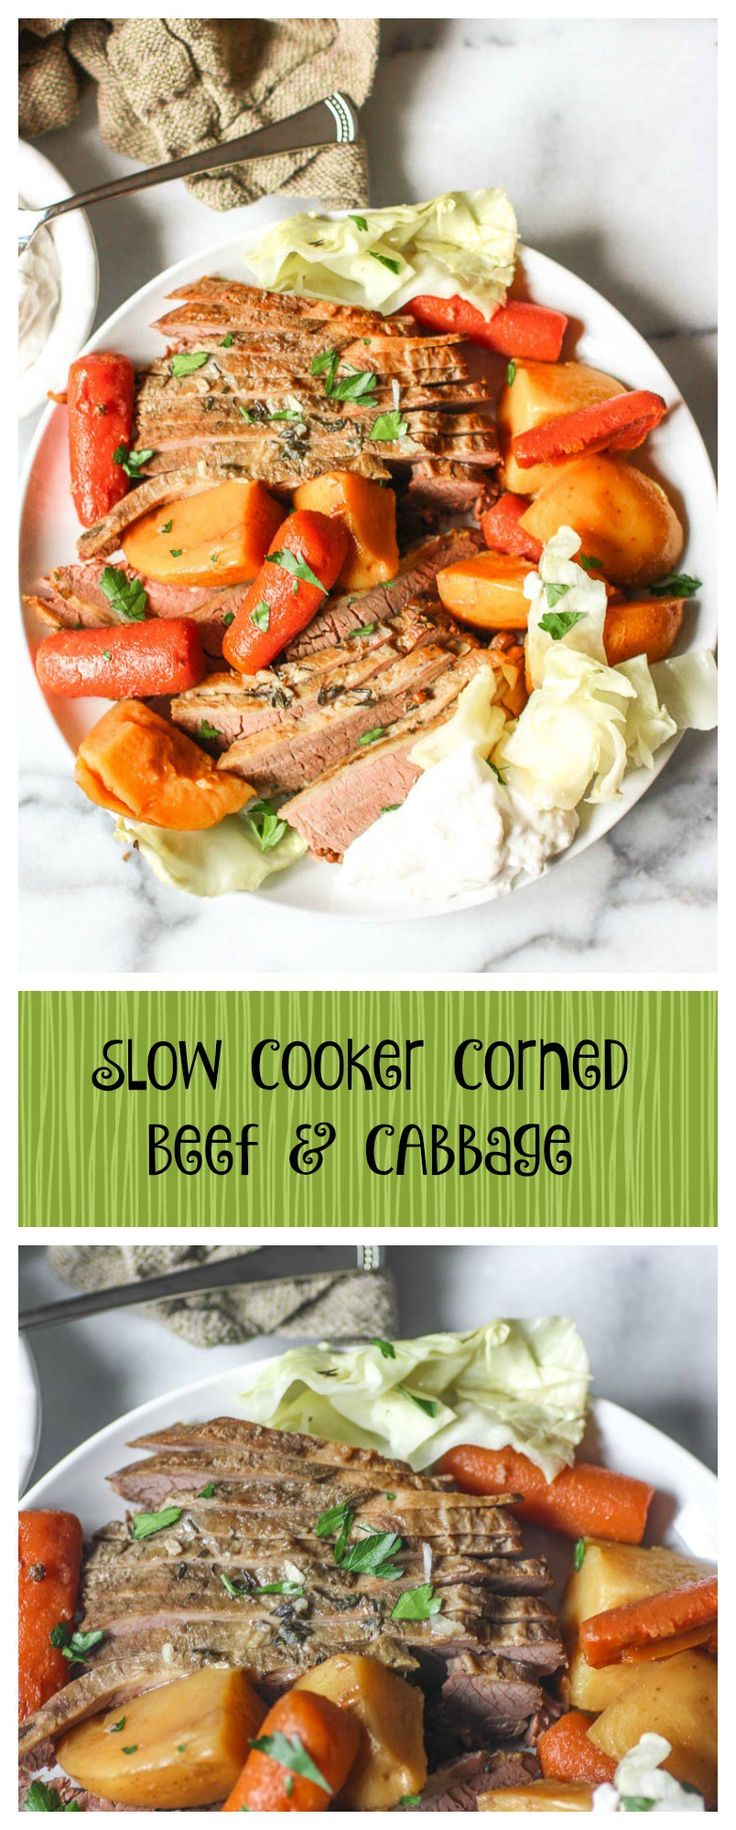 Slow Cooker Corned Beef And Cabbage. This recipe is simple